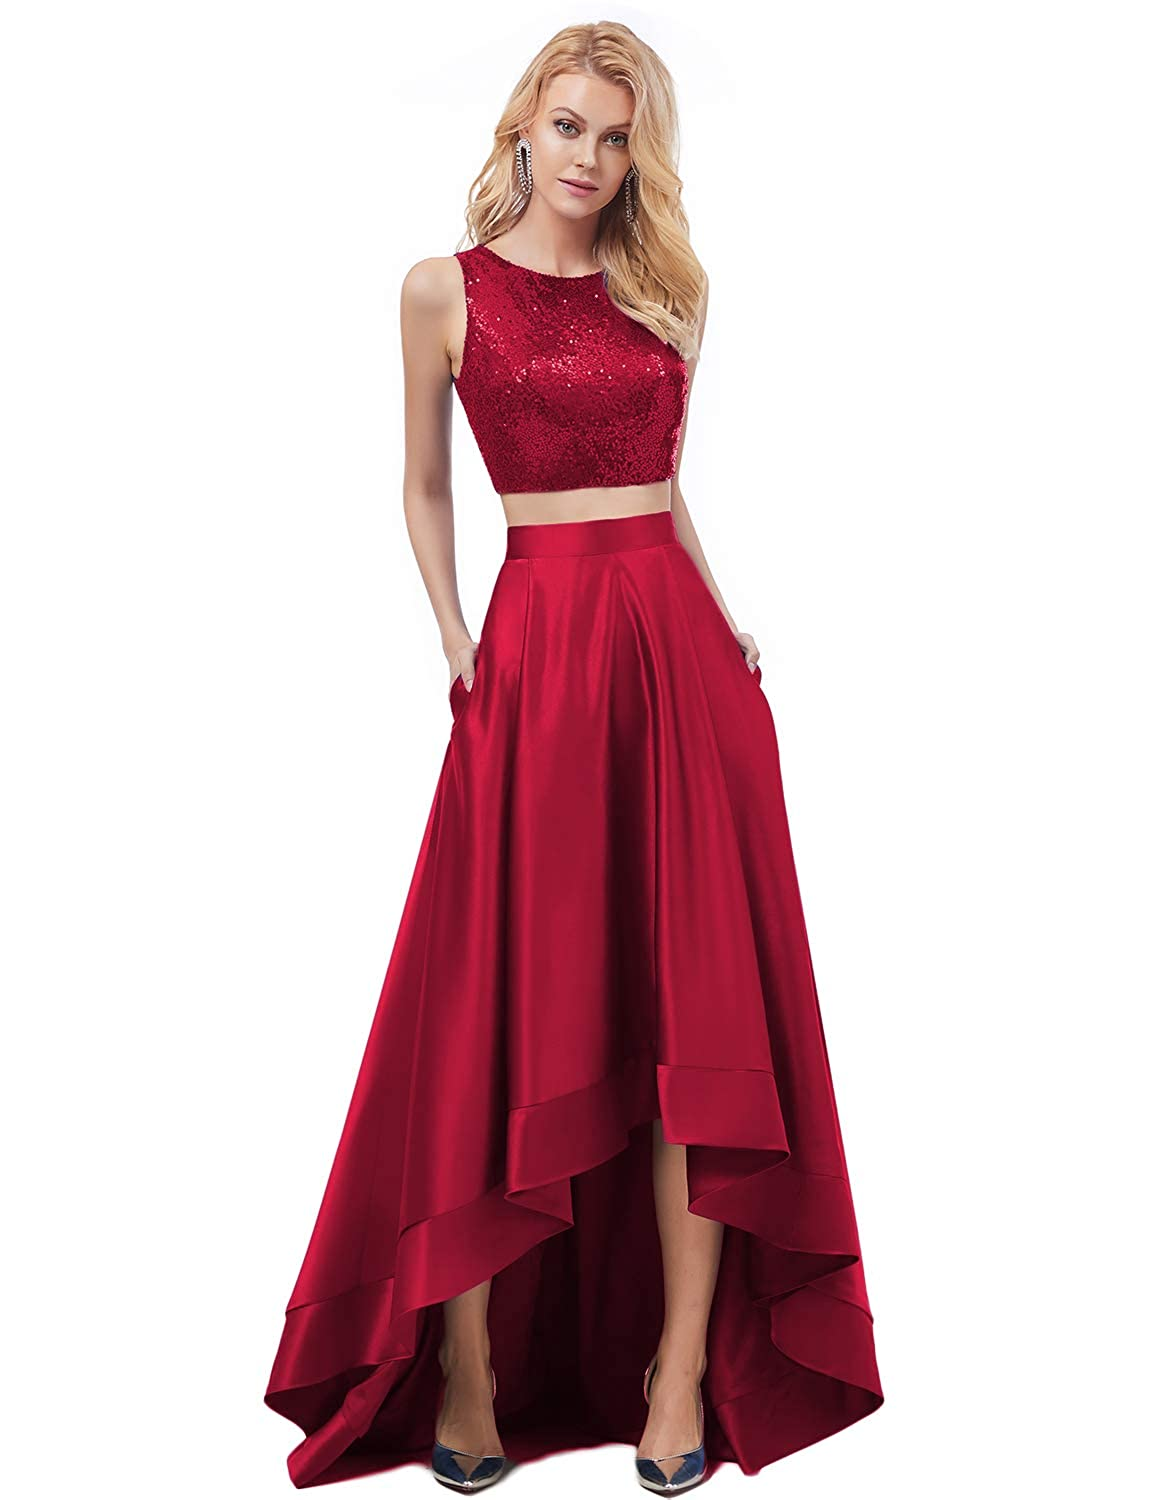 Burgundy YSMei Womens Two Piece Sequin Bodice High Low Satin Evening Prom Dress ON039